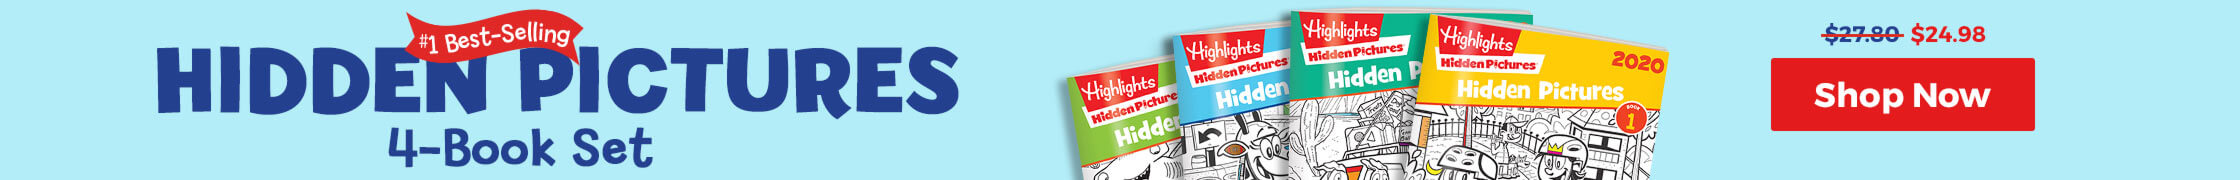 Hidden Pictures 4-book sets are now just $24.98!